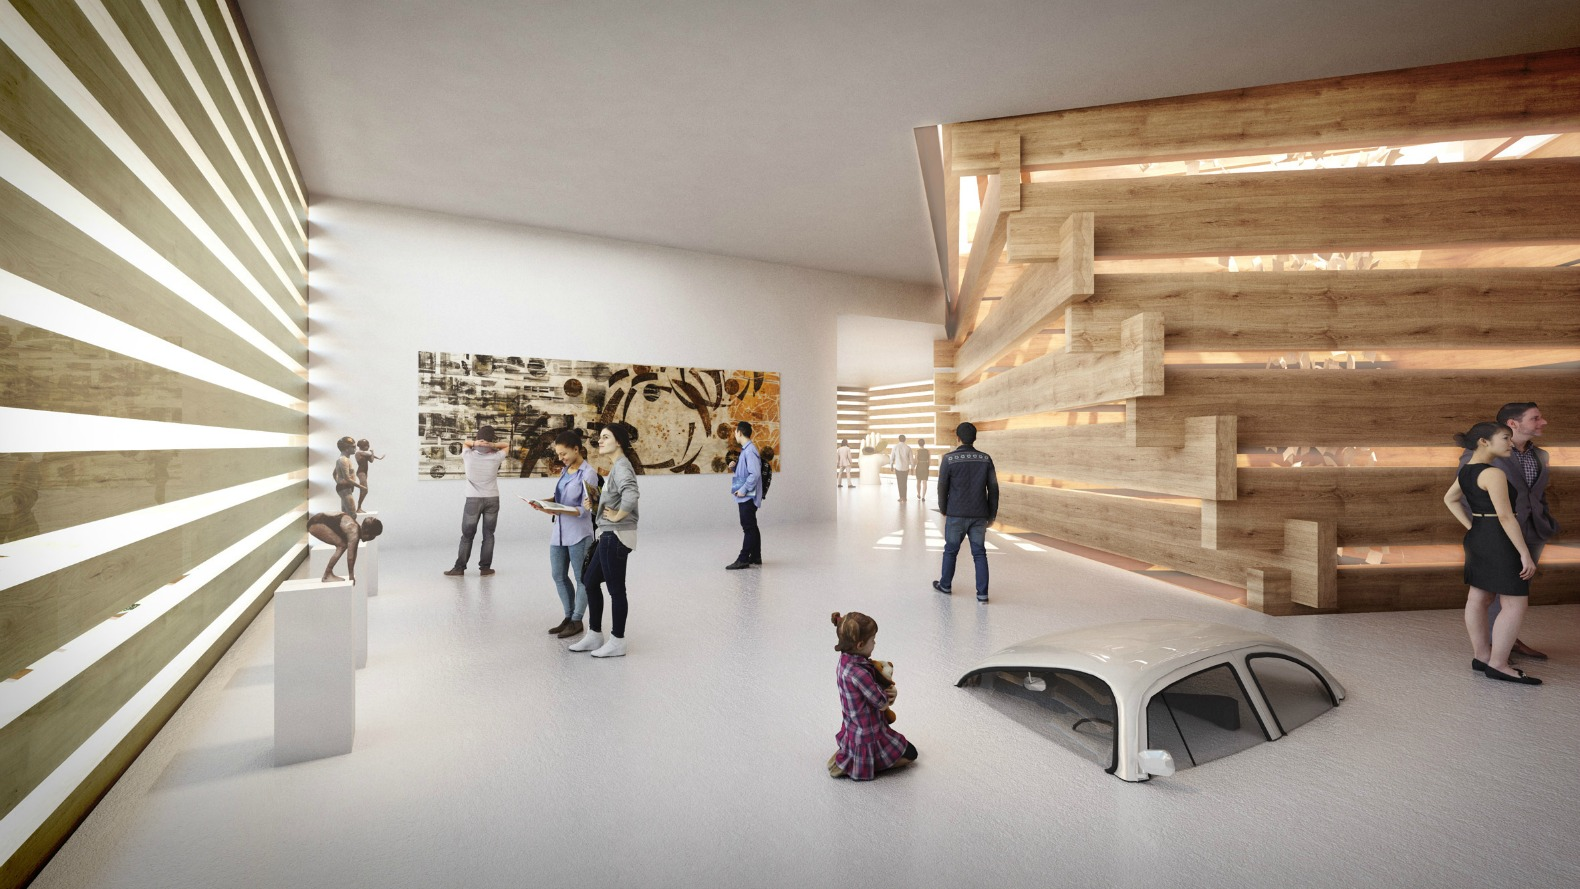 Kengo kuma 39 s turkish art museum is made of stacked timber Art gallery interior design